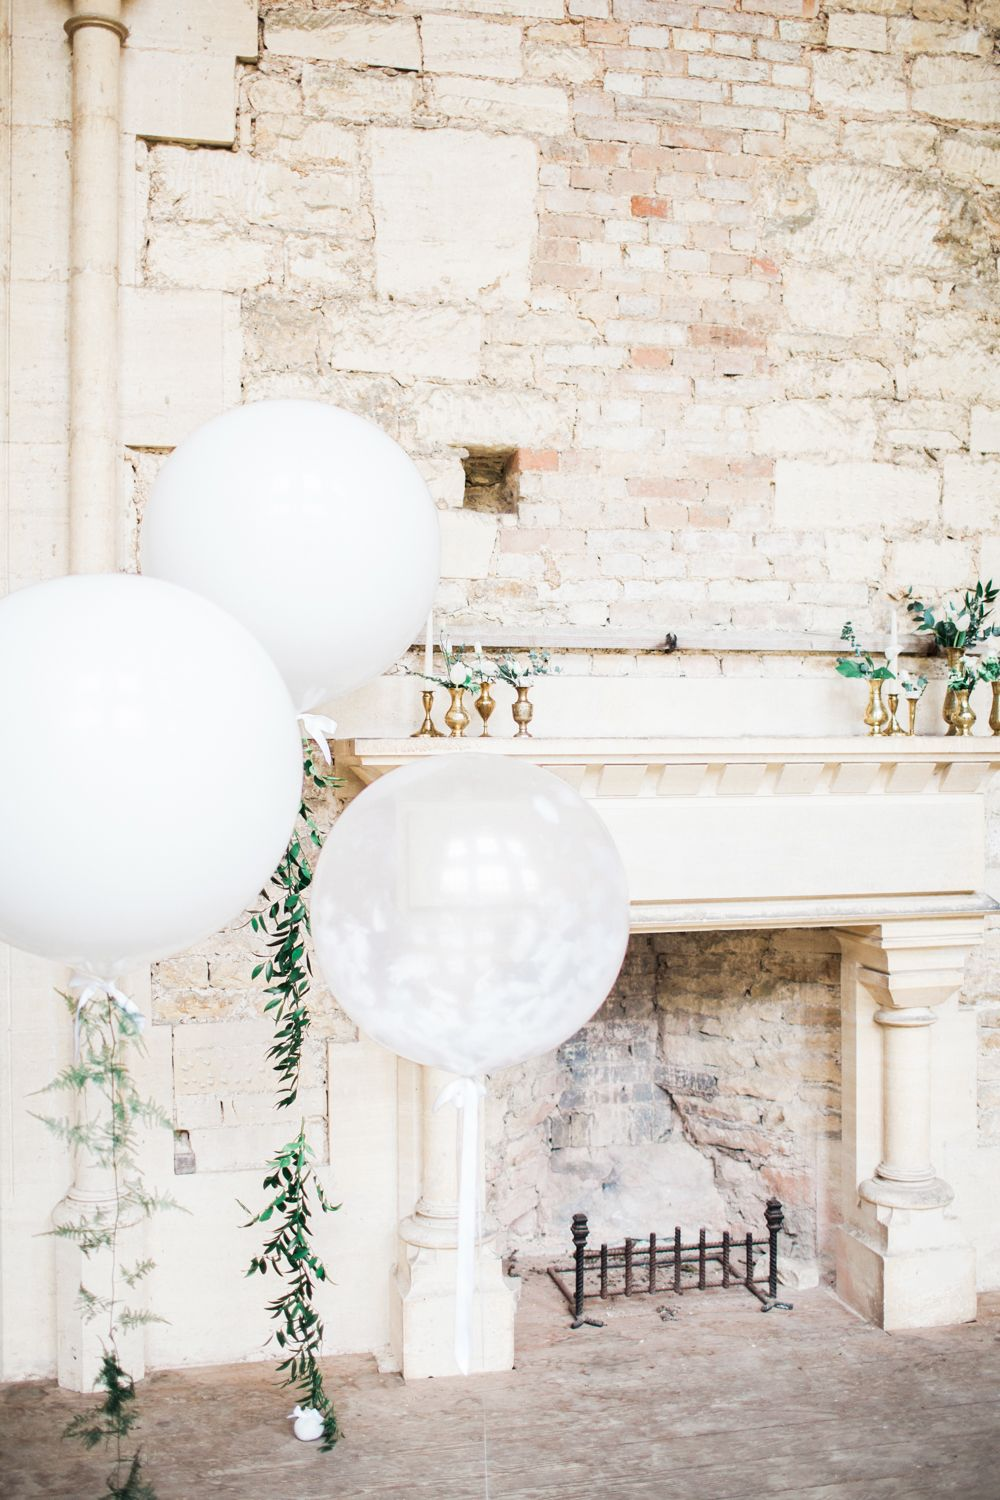 1920's wedding decorations ideas  s Wedding Inspiration Daisy Says I Do Images From Bowtie and